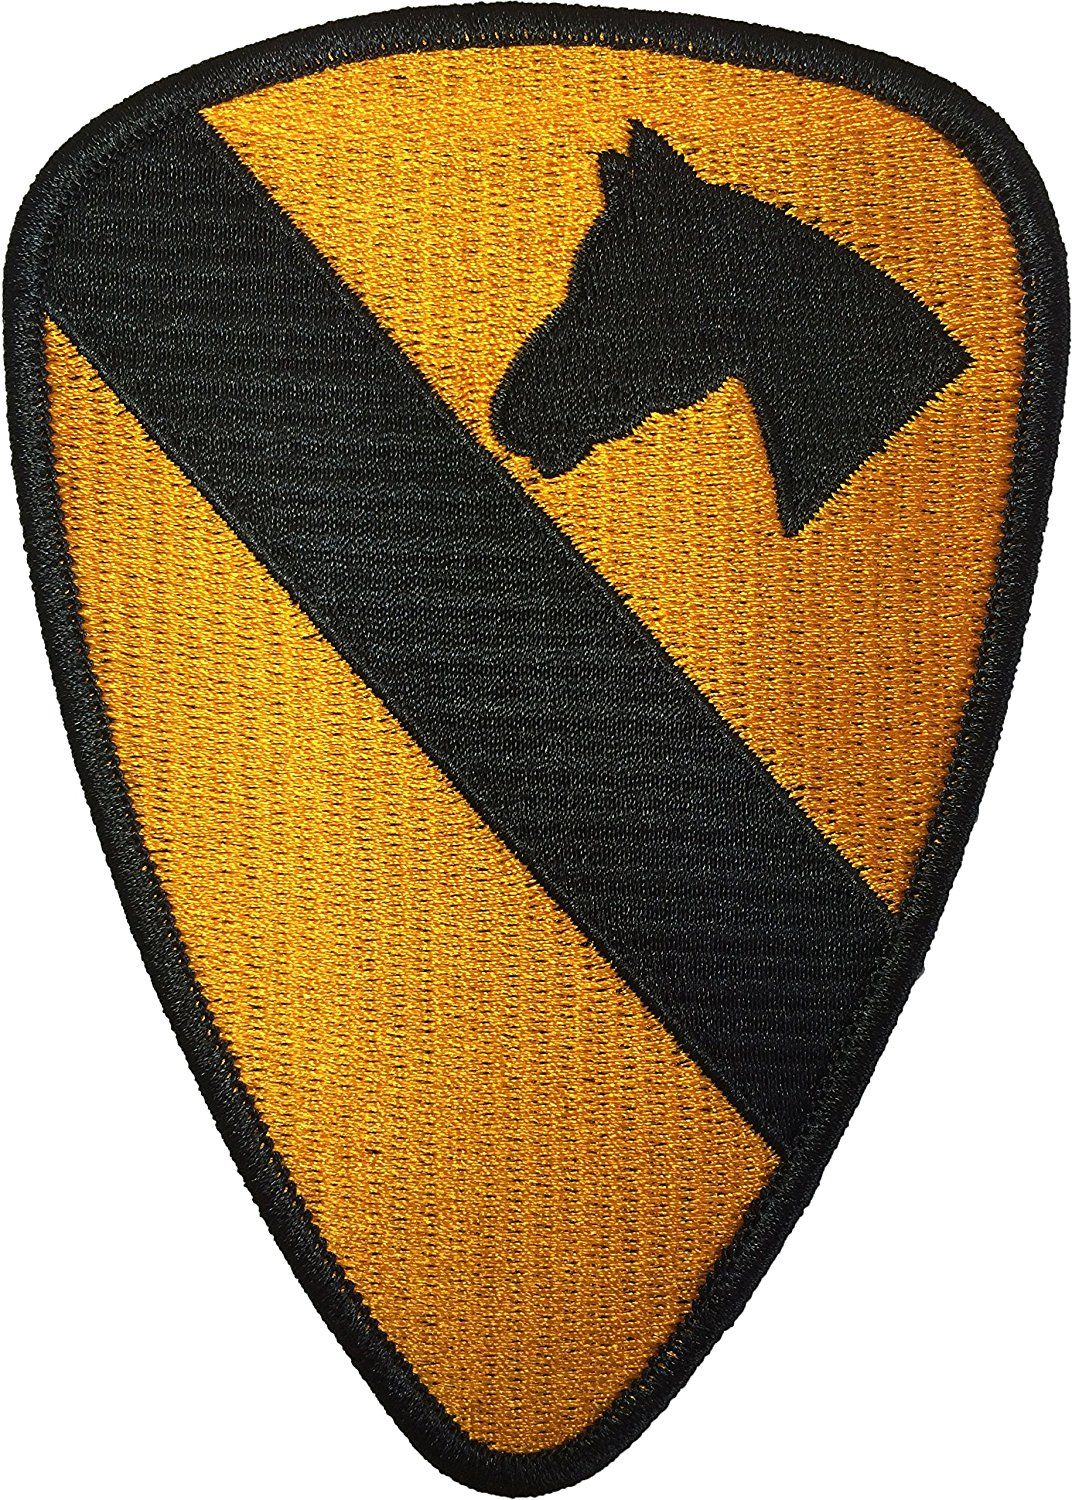 1st Cavalry Divison Horse HQ Military U.S. Army Tactical